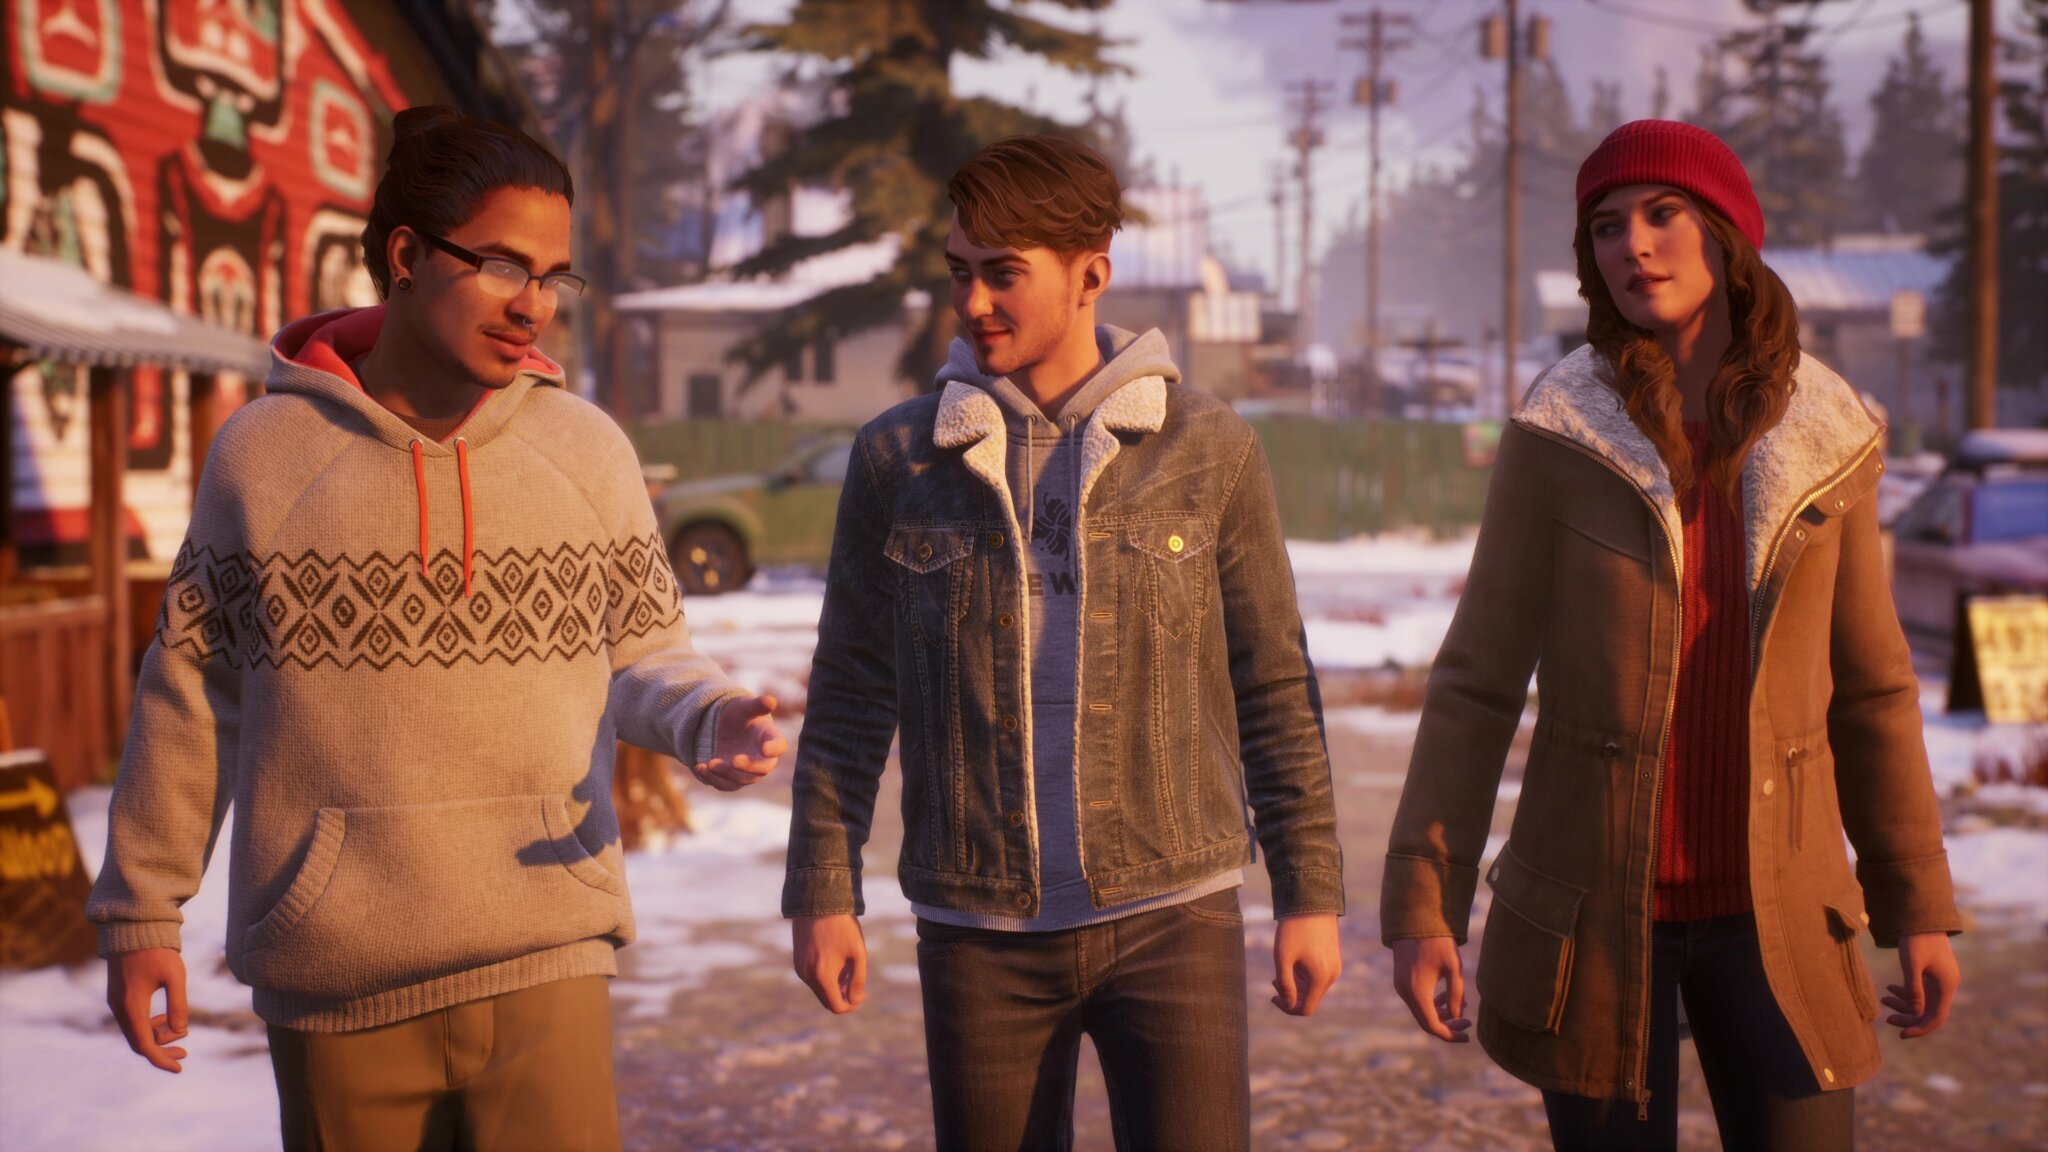 three young people walking side by side